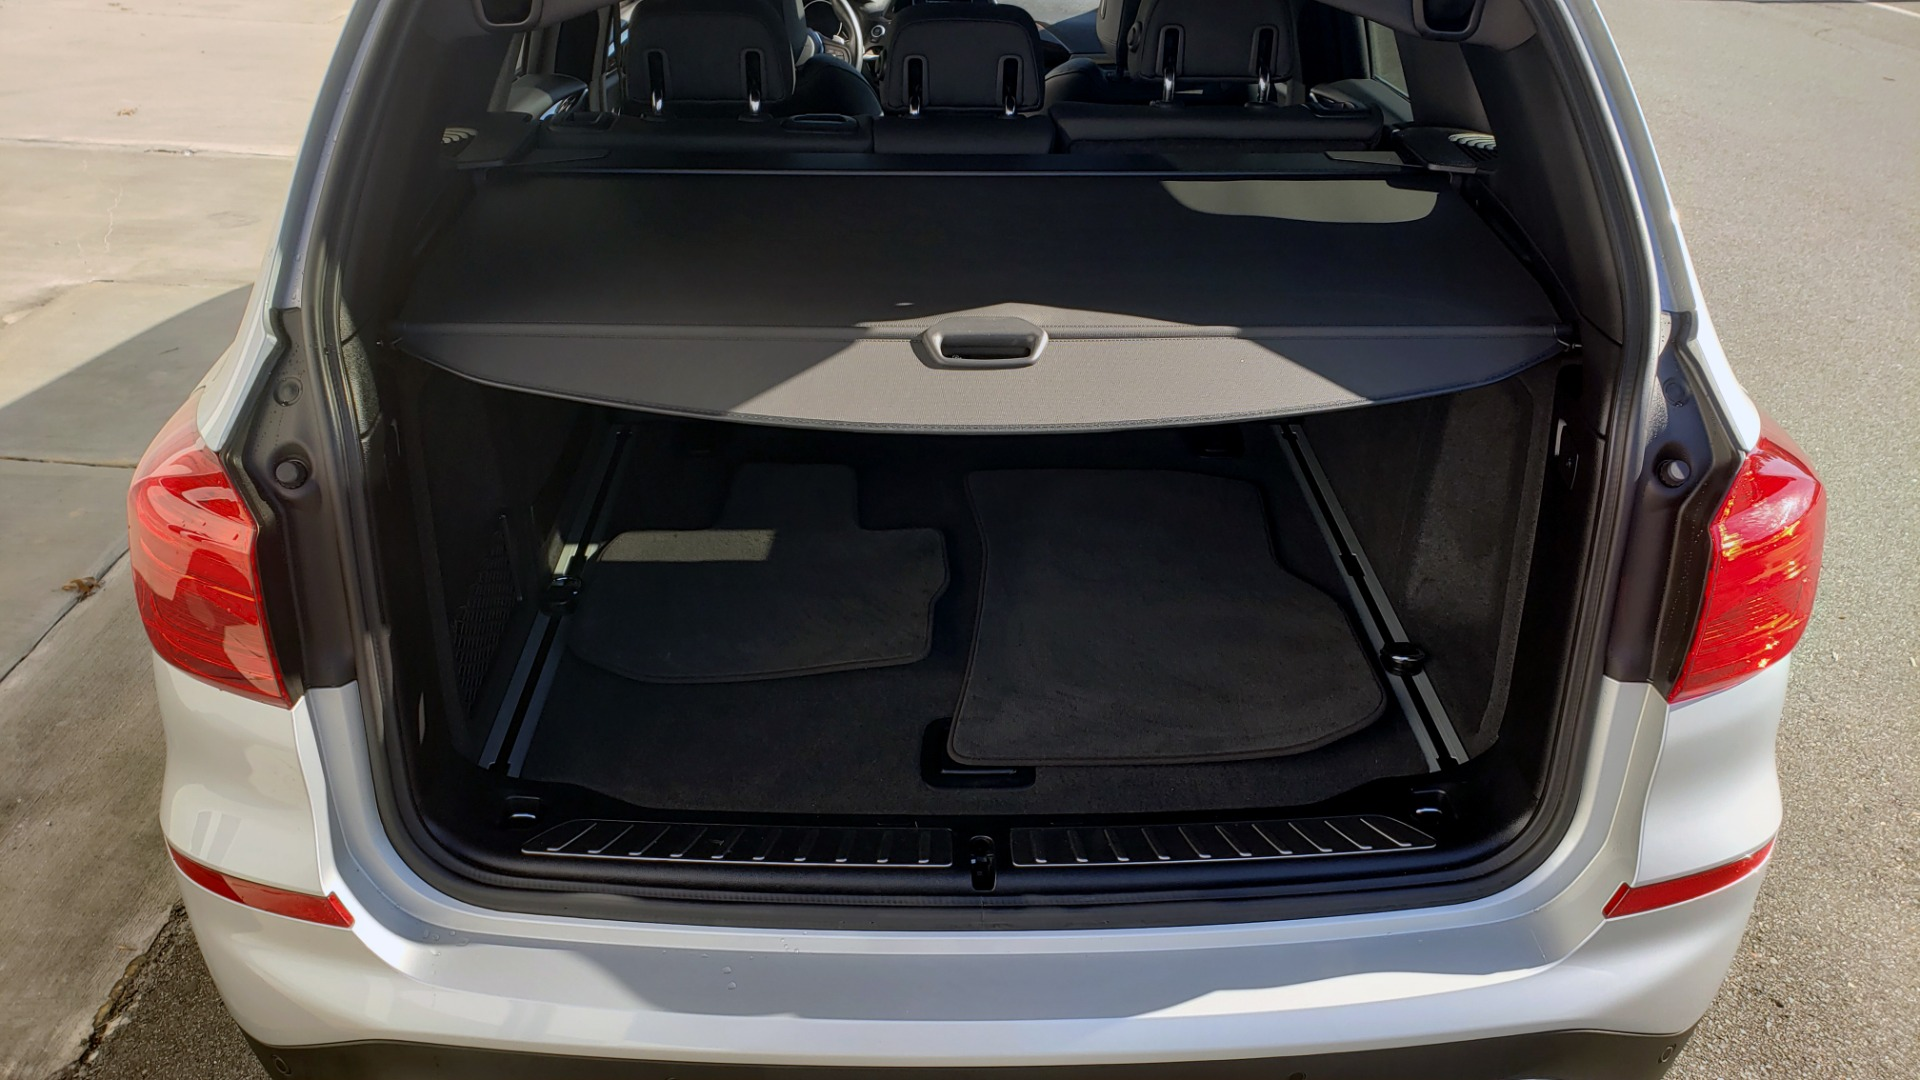 Used 2019 BMW X3 XDRIVE30I / DRVR ASST / PANO-ROOF / HTD STS / REARVIEW for sale $41,995 at Formula Imports in Charlotte NC 28227 18